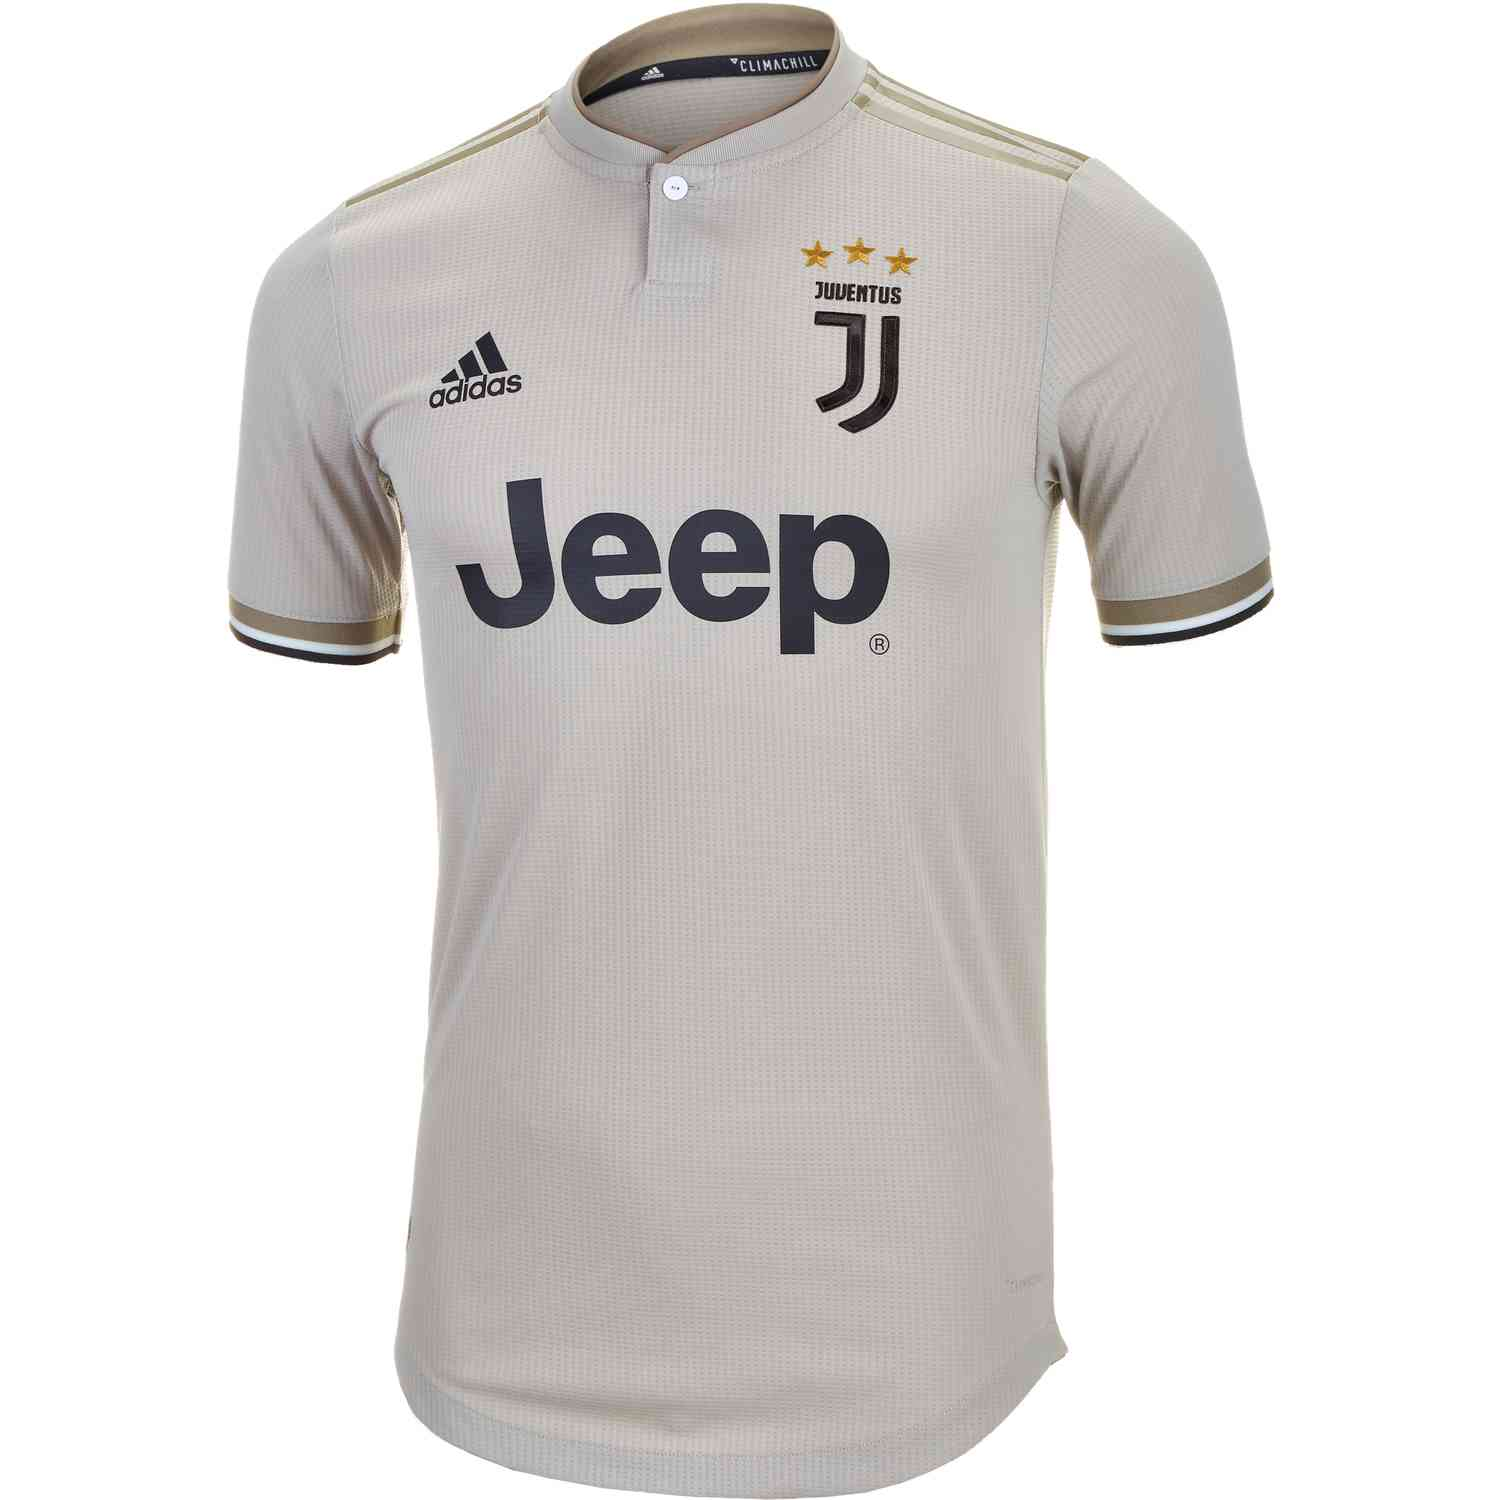 online retailer 4458d 27bdd 2018/19 adidas Juventus Away Authentic Jersey